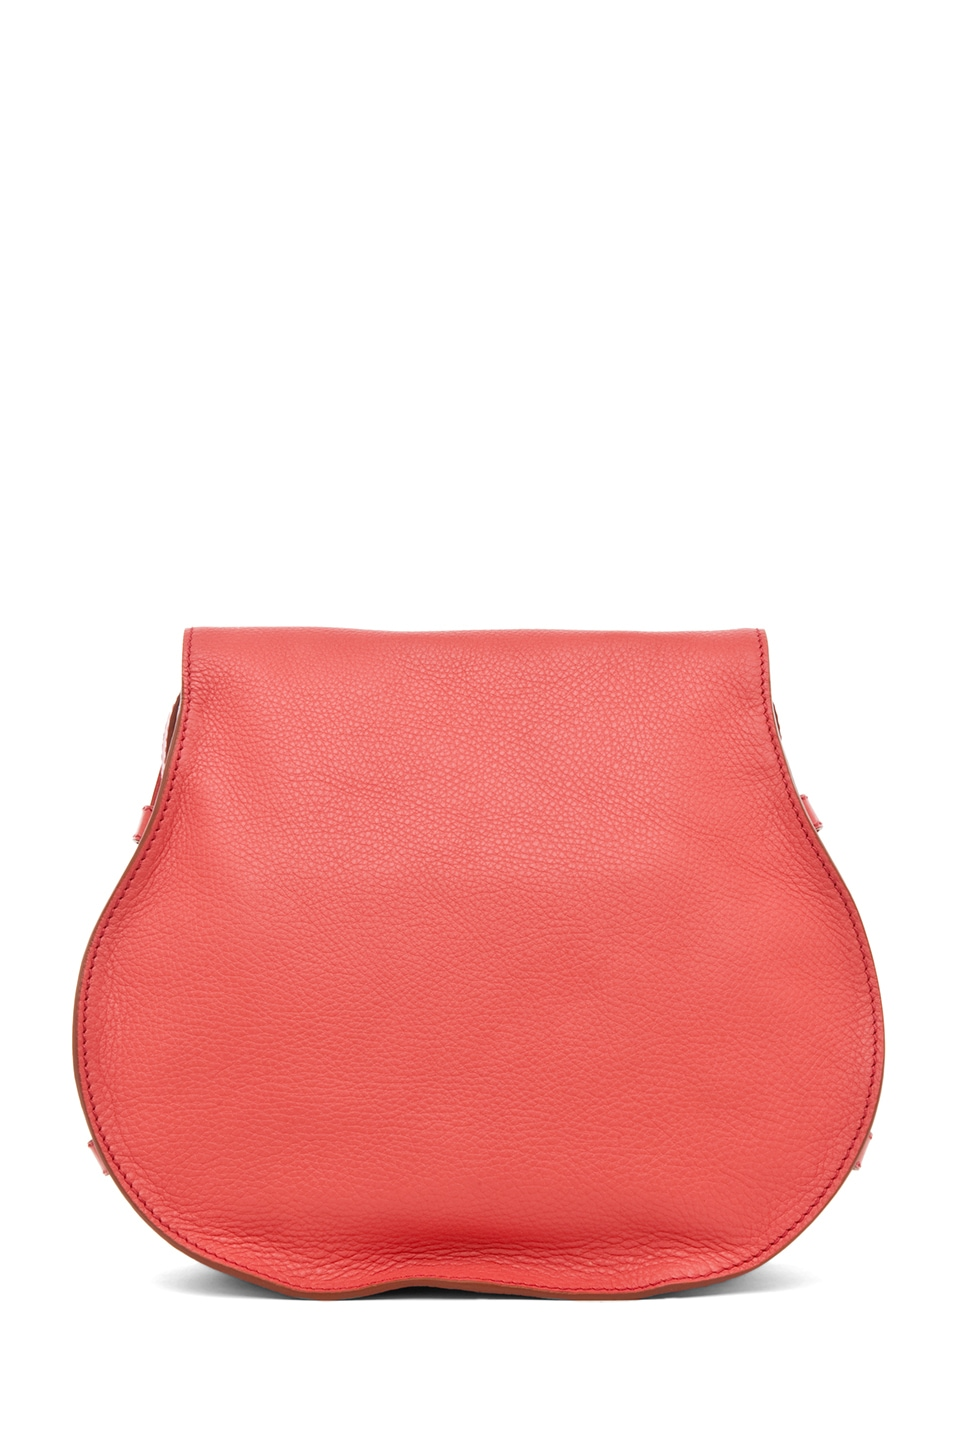 Image 2 of Chloe PINK PARTY EXCLUSIVE Medium Marcie Satchel in Paradise Pink